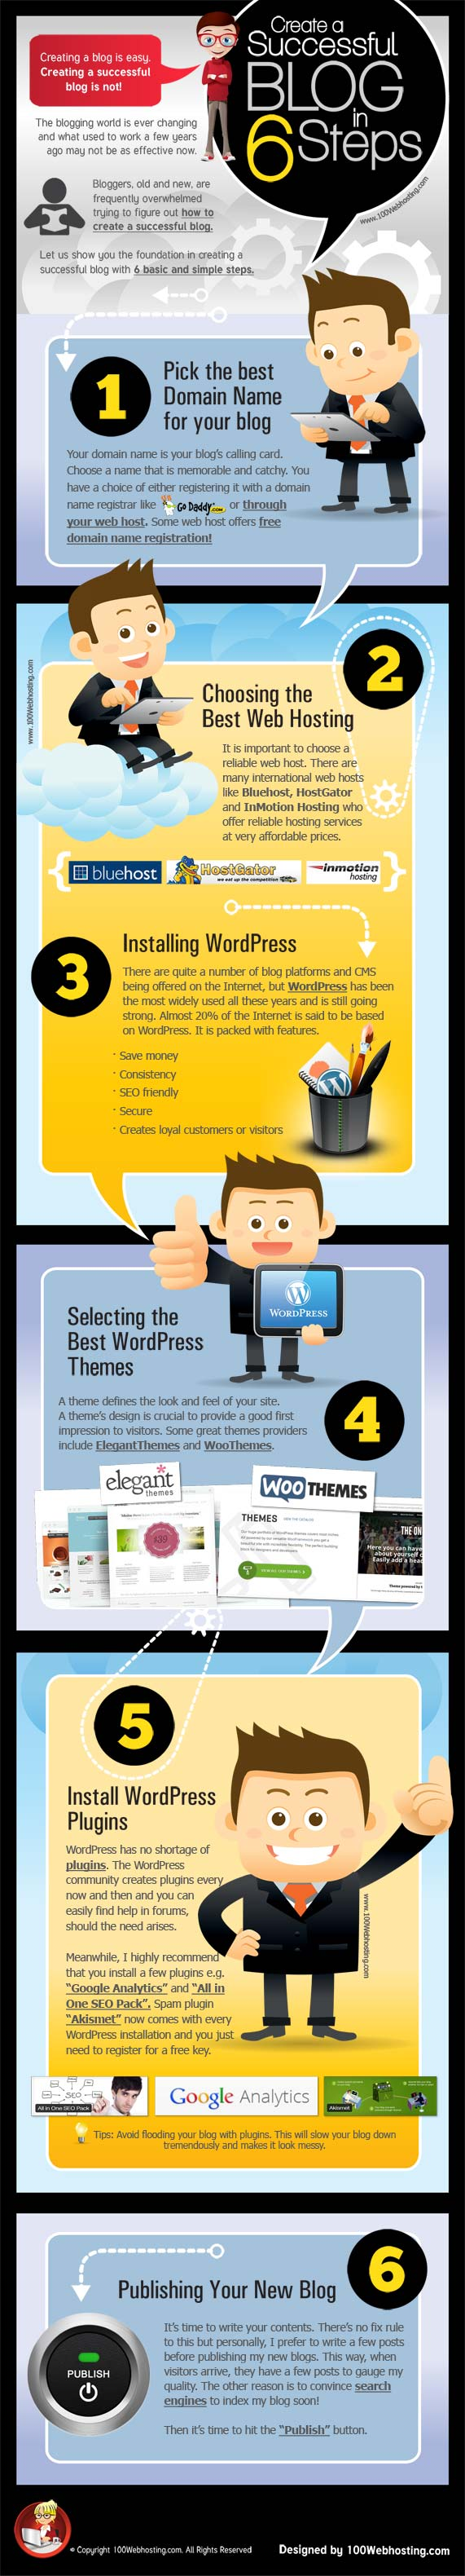 6 Steps to a Successful Blog